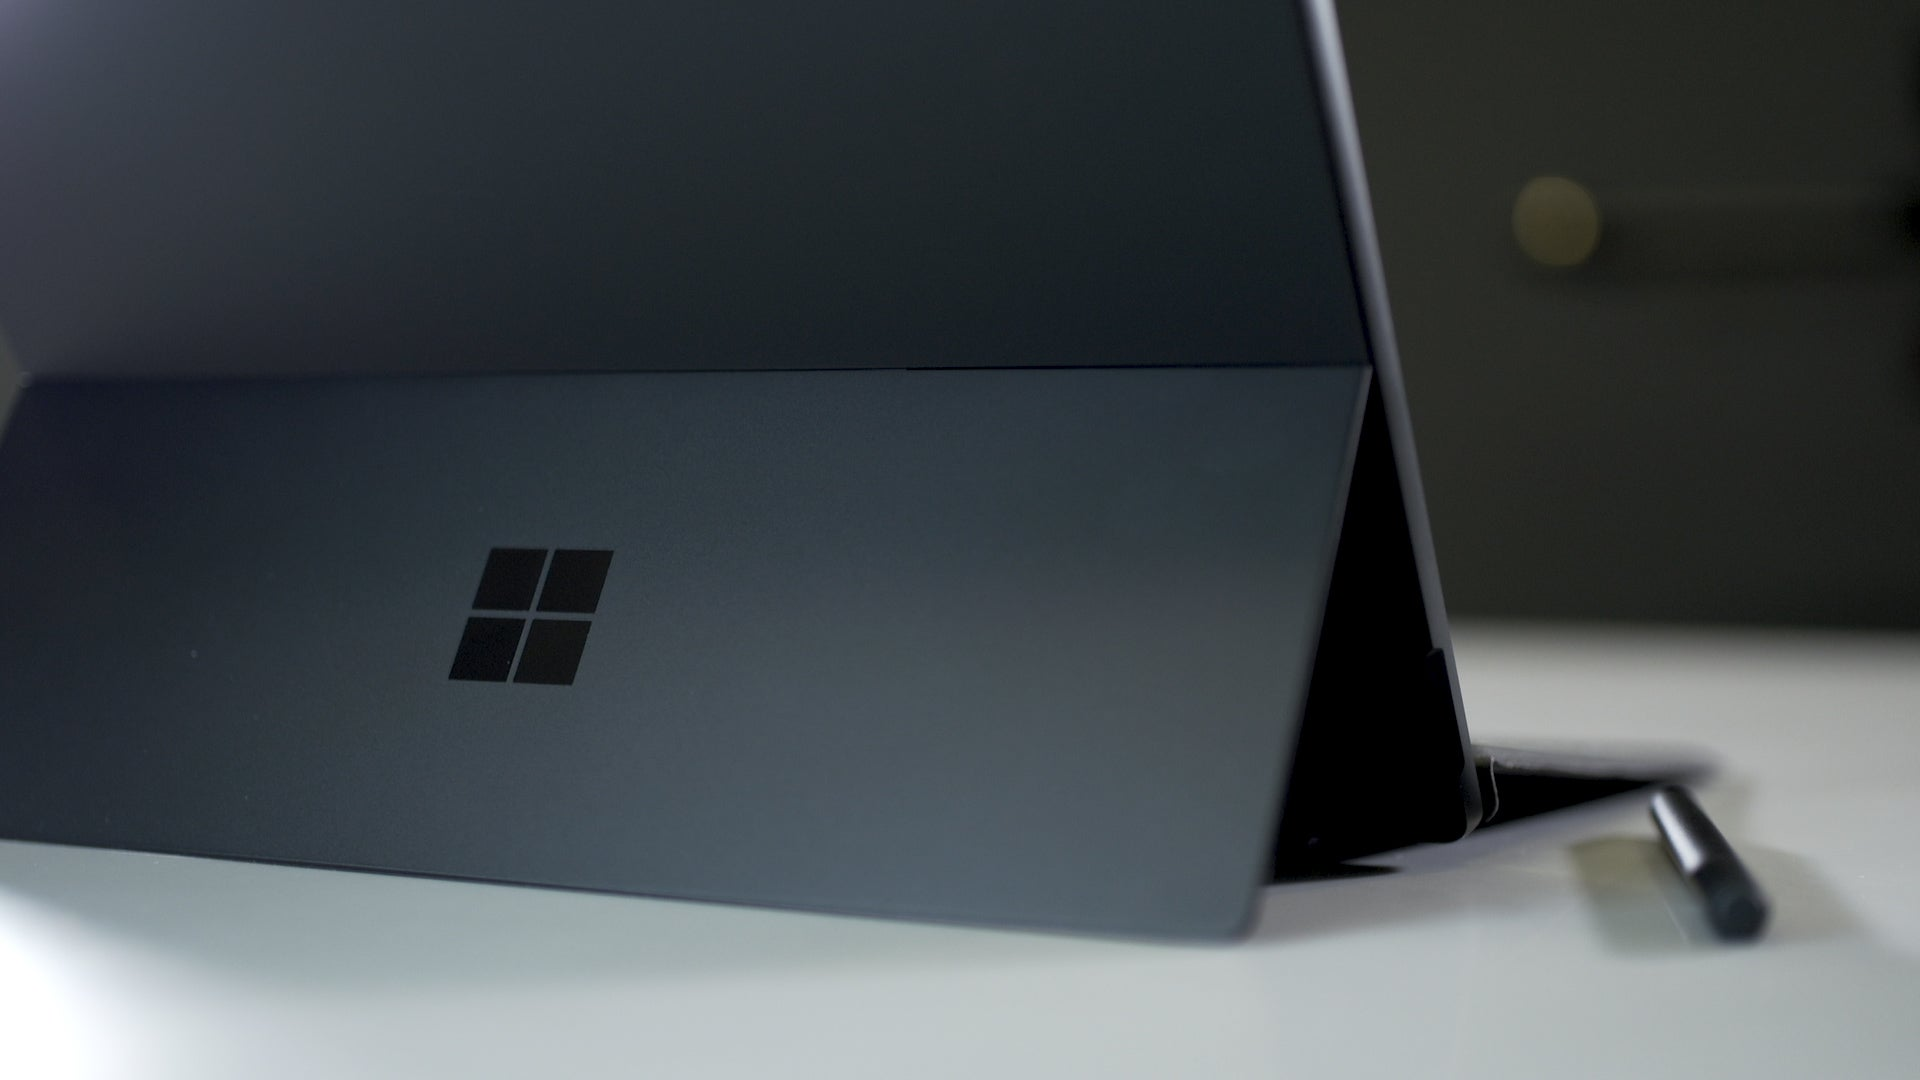 New Microsoft Surface Range: Australian Price, Specs And Release Date